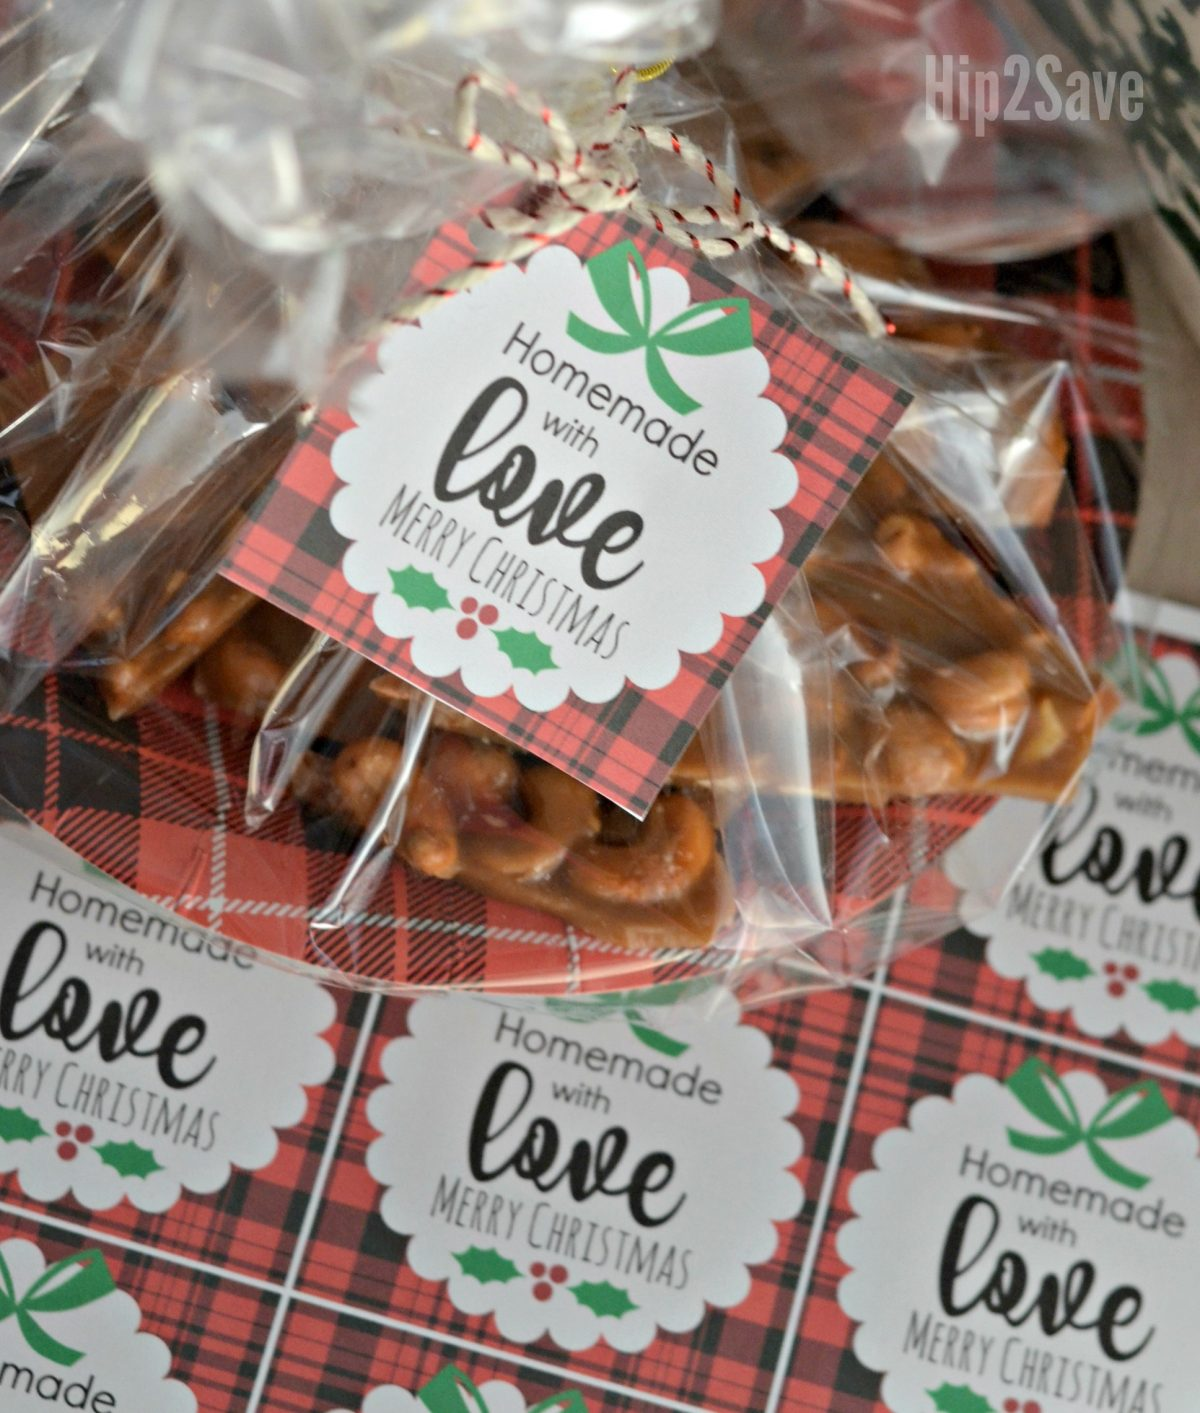 homemade-with-love-gift-tags